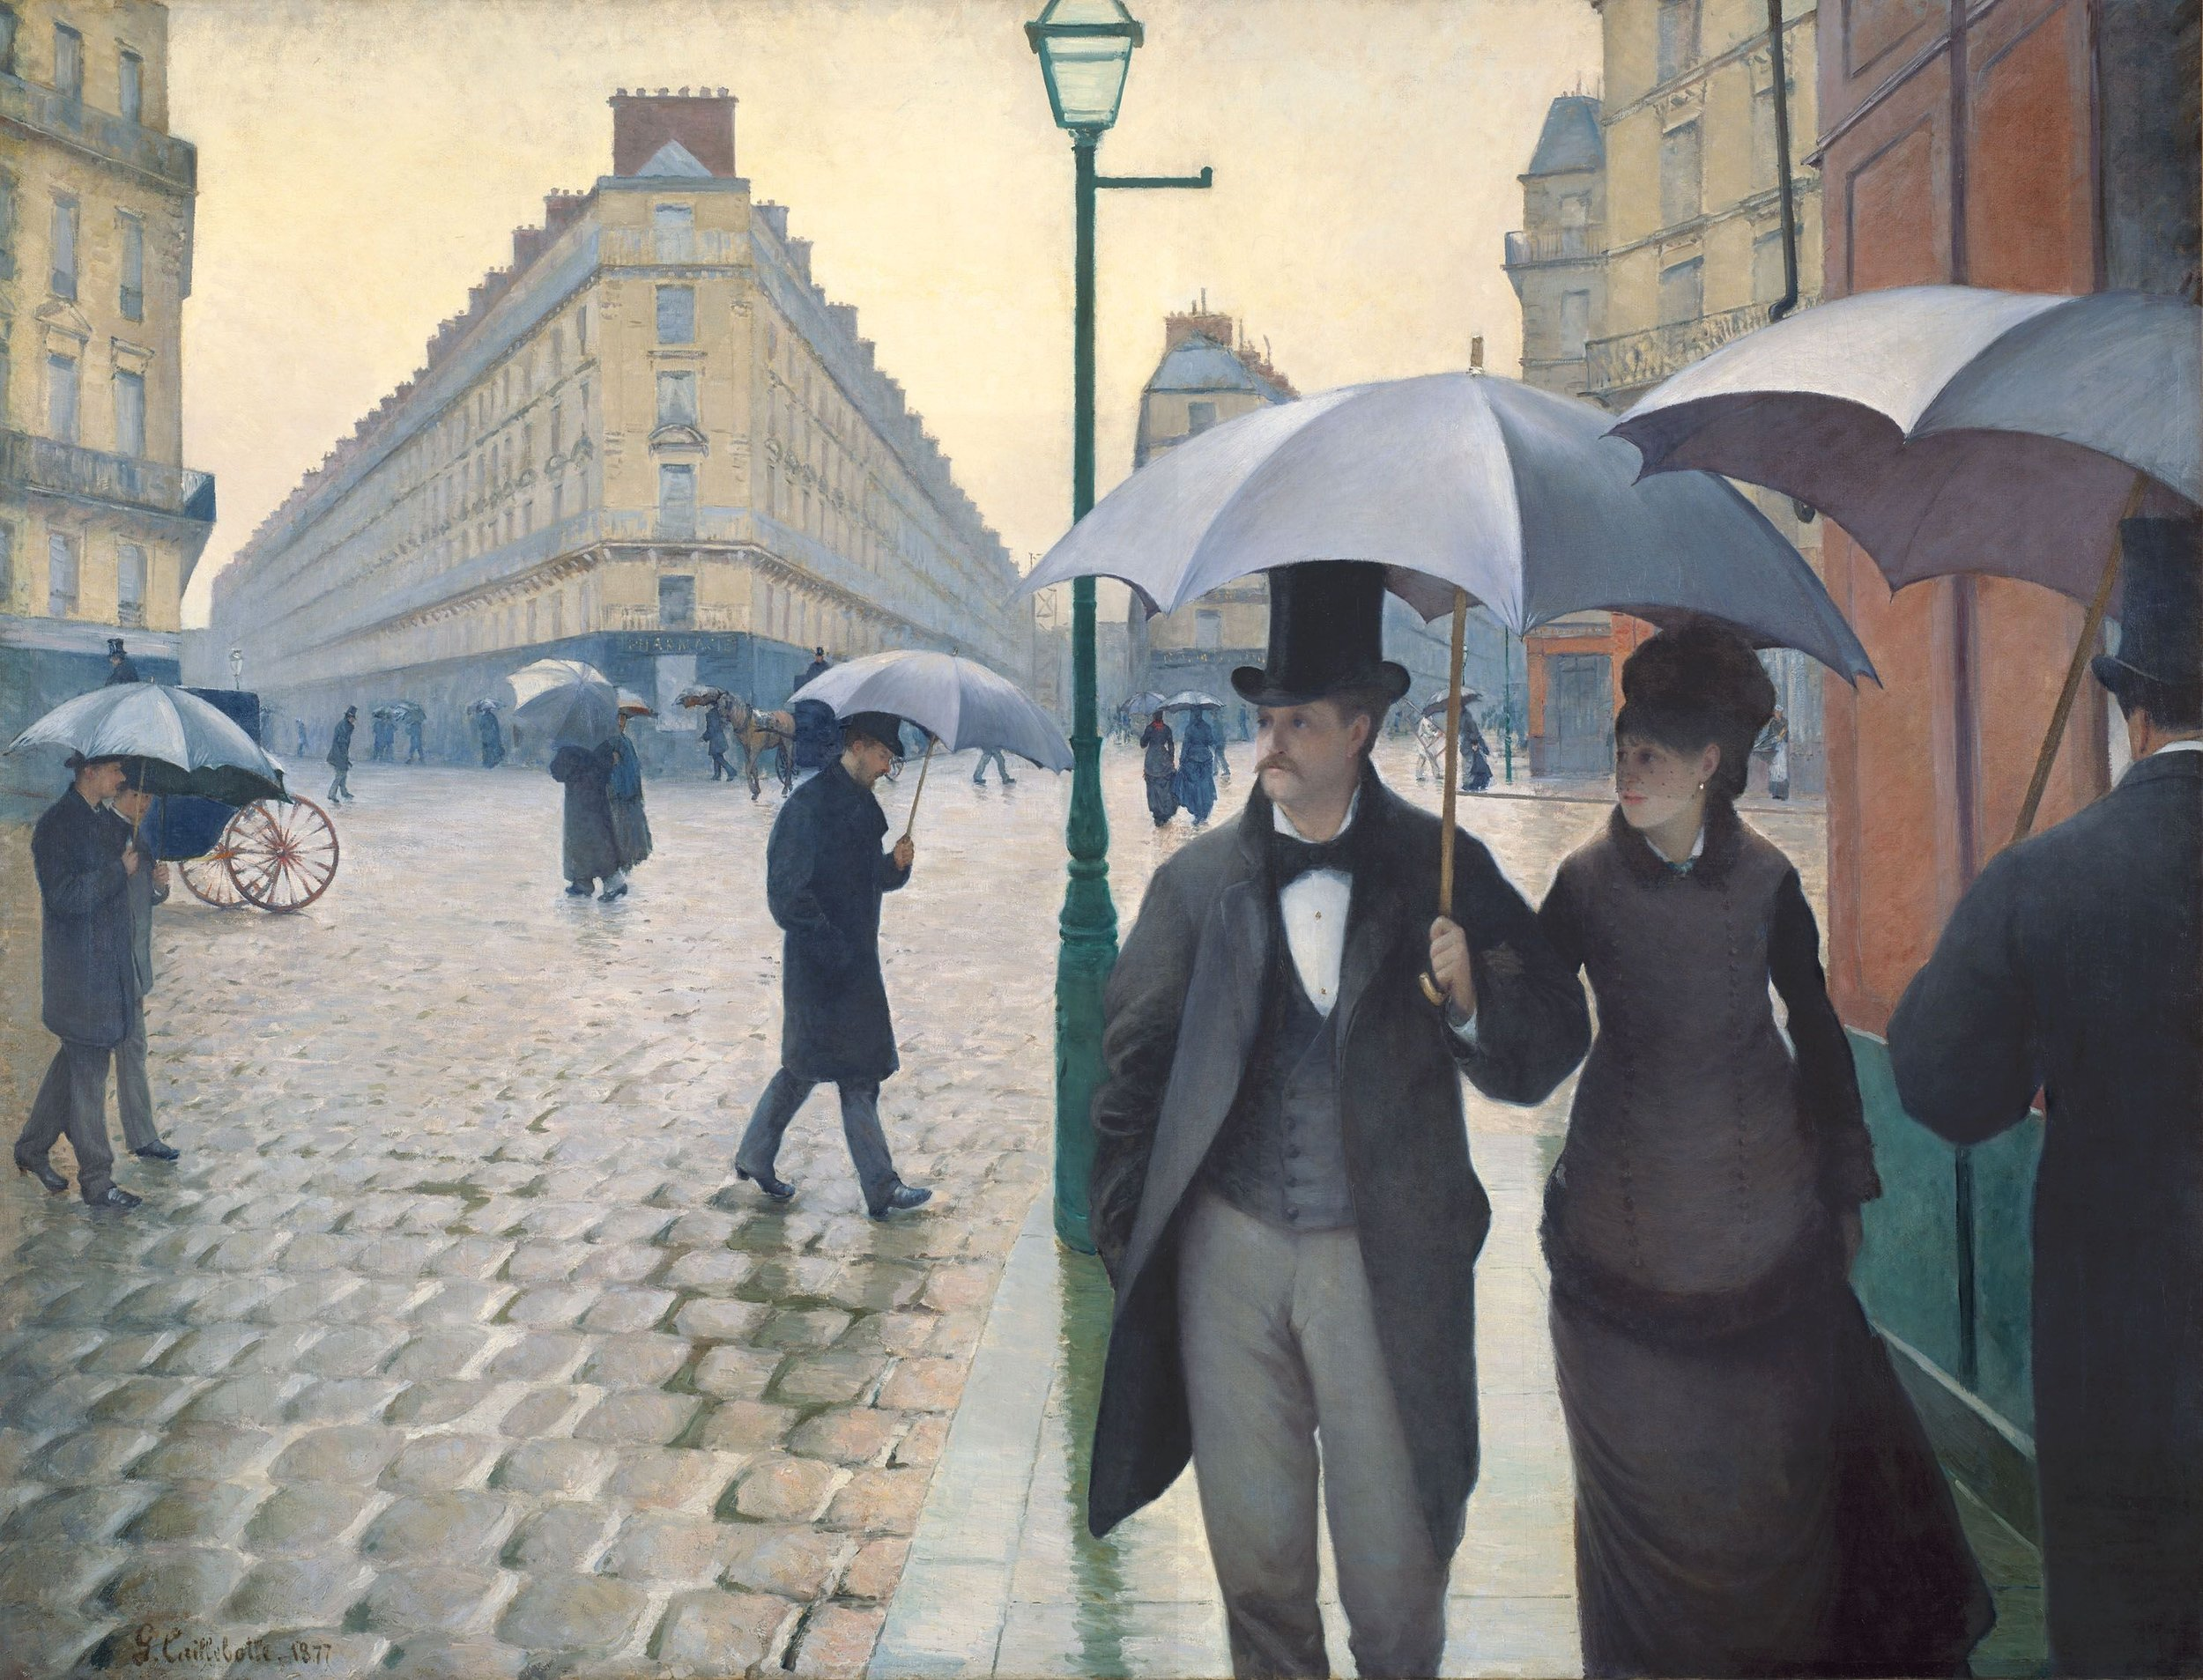 Gustave Caillebot: Paris Street: Rainy Day 1877